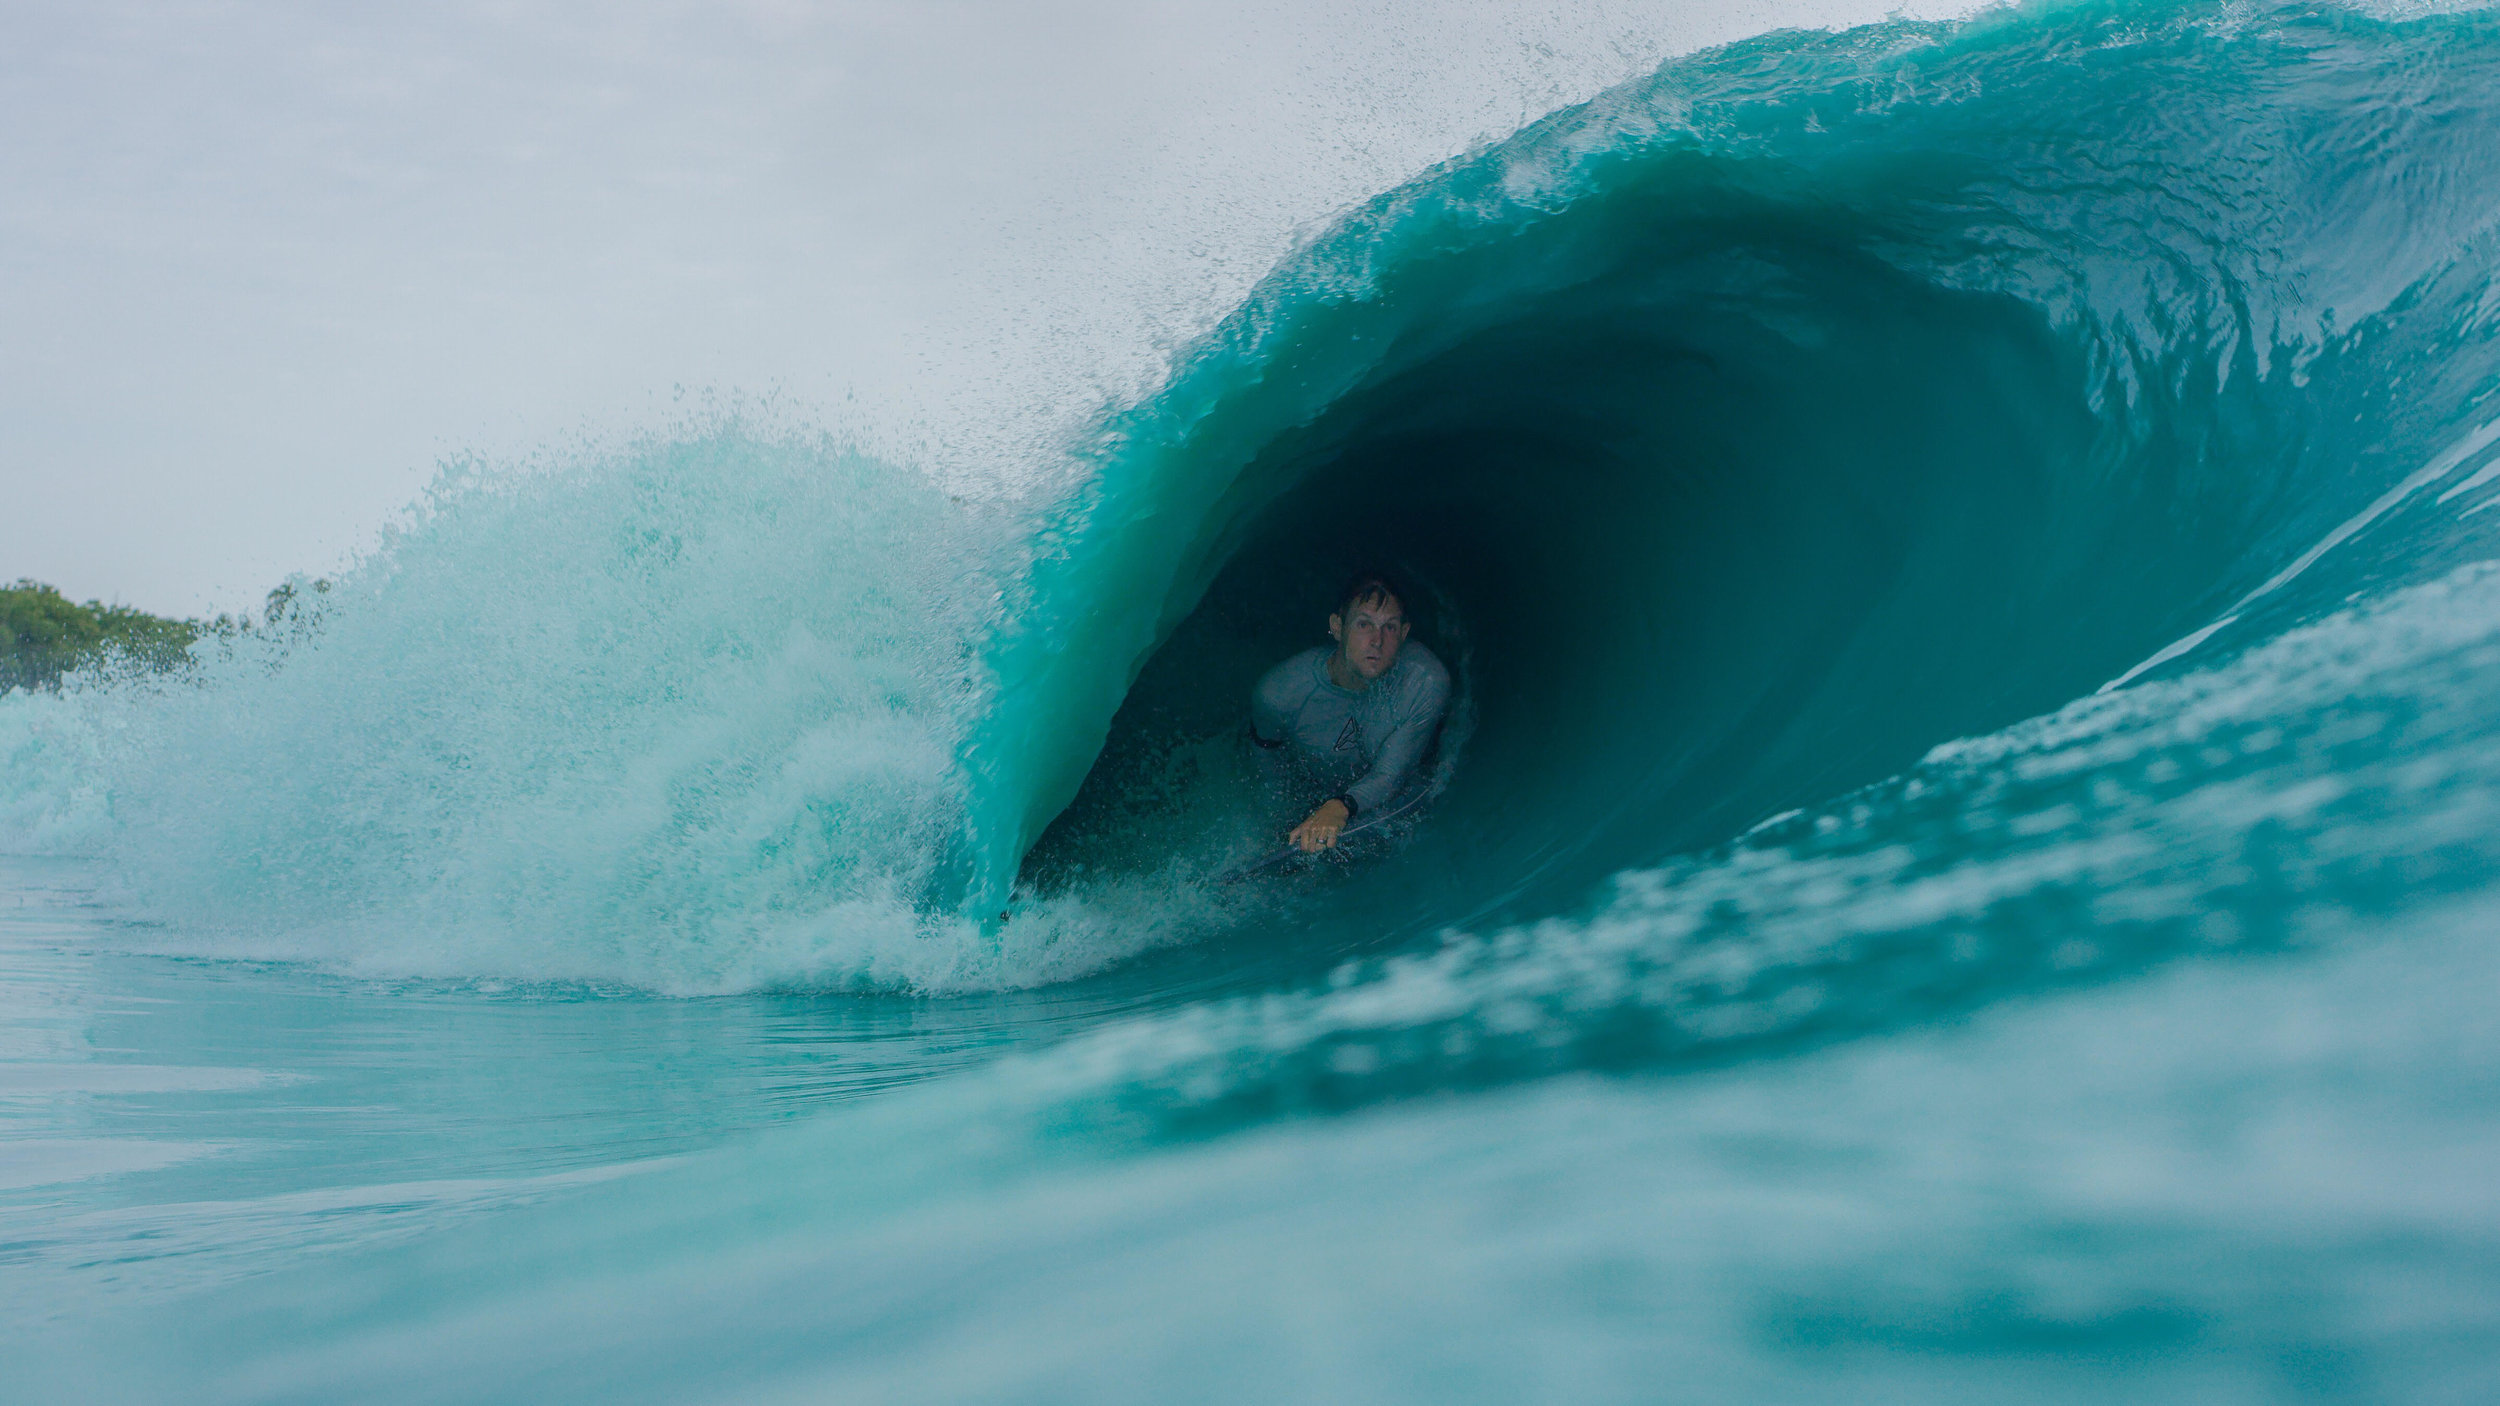 Mr. Hamilton taming the Texan pool. Photo:  @lieberfilms